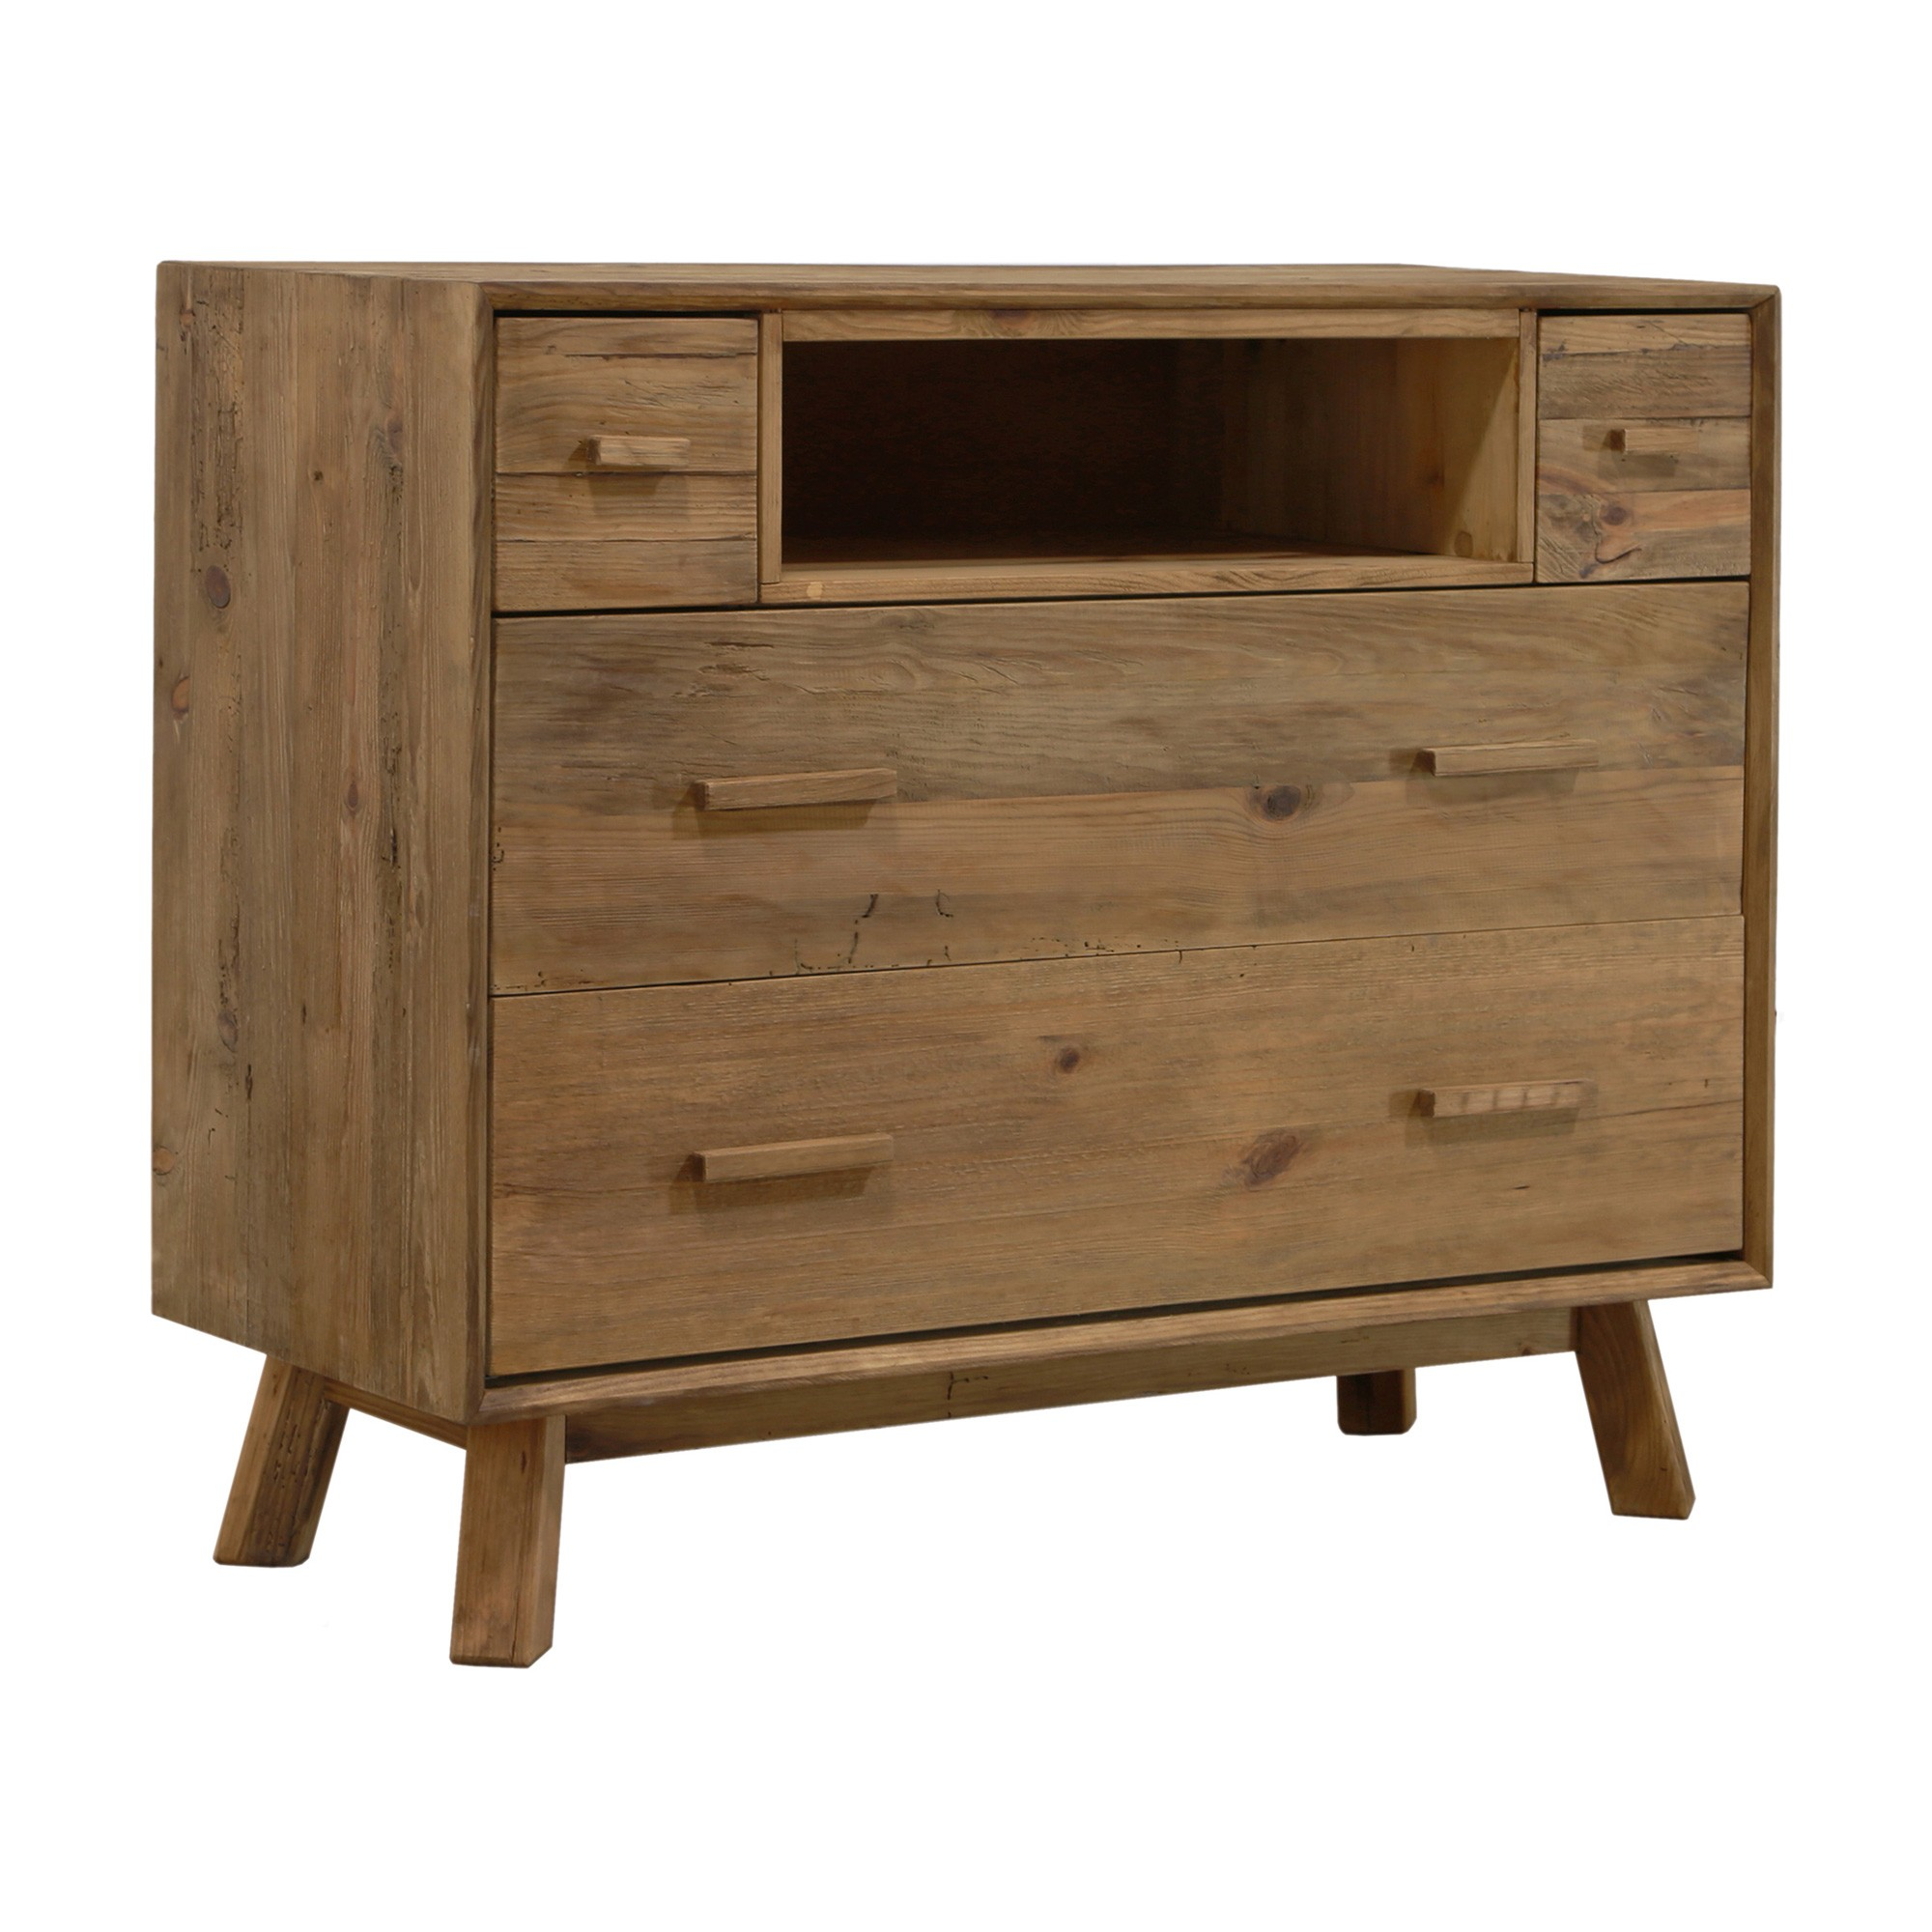 Mandalay Recycled Pine Timber 4 Drawer High TV Stand, 112cm